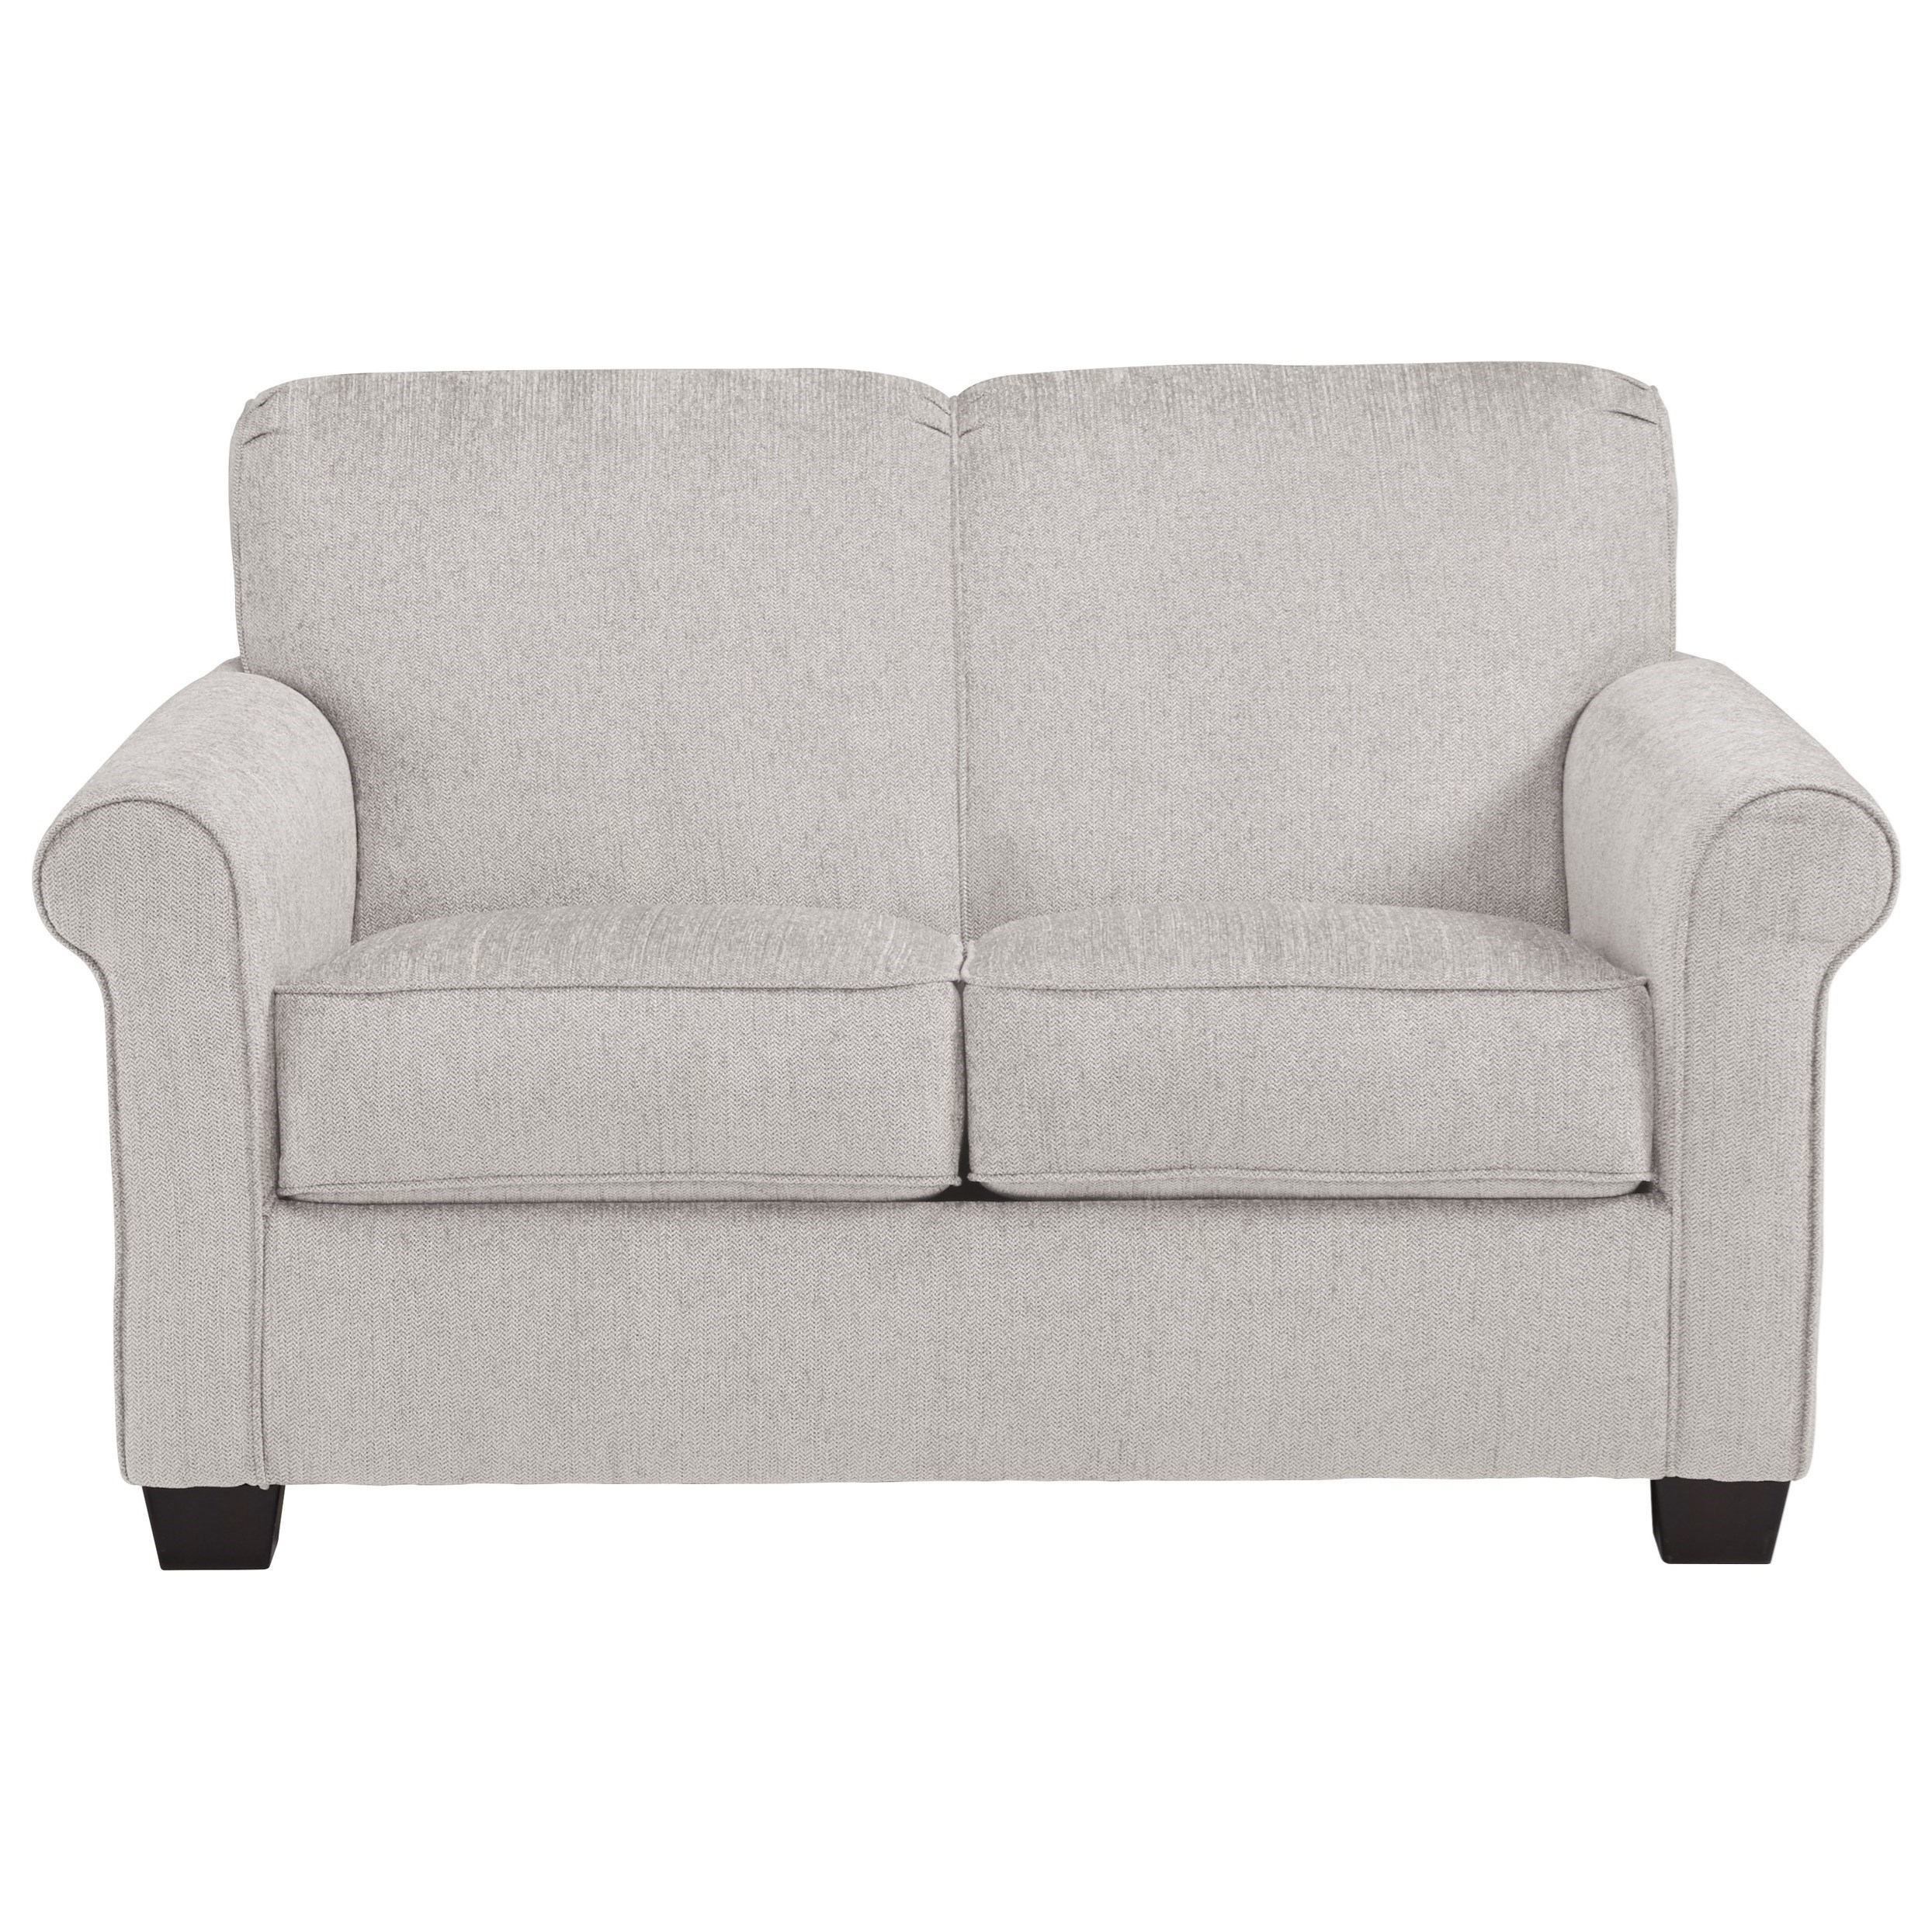 Signature Design By Ashley CanslerTwin Sleeper Sofa ...